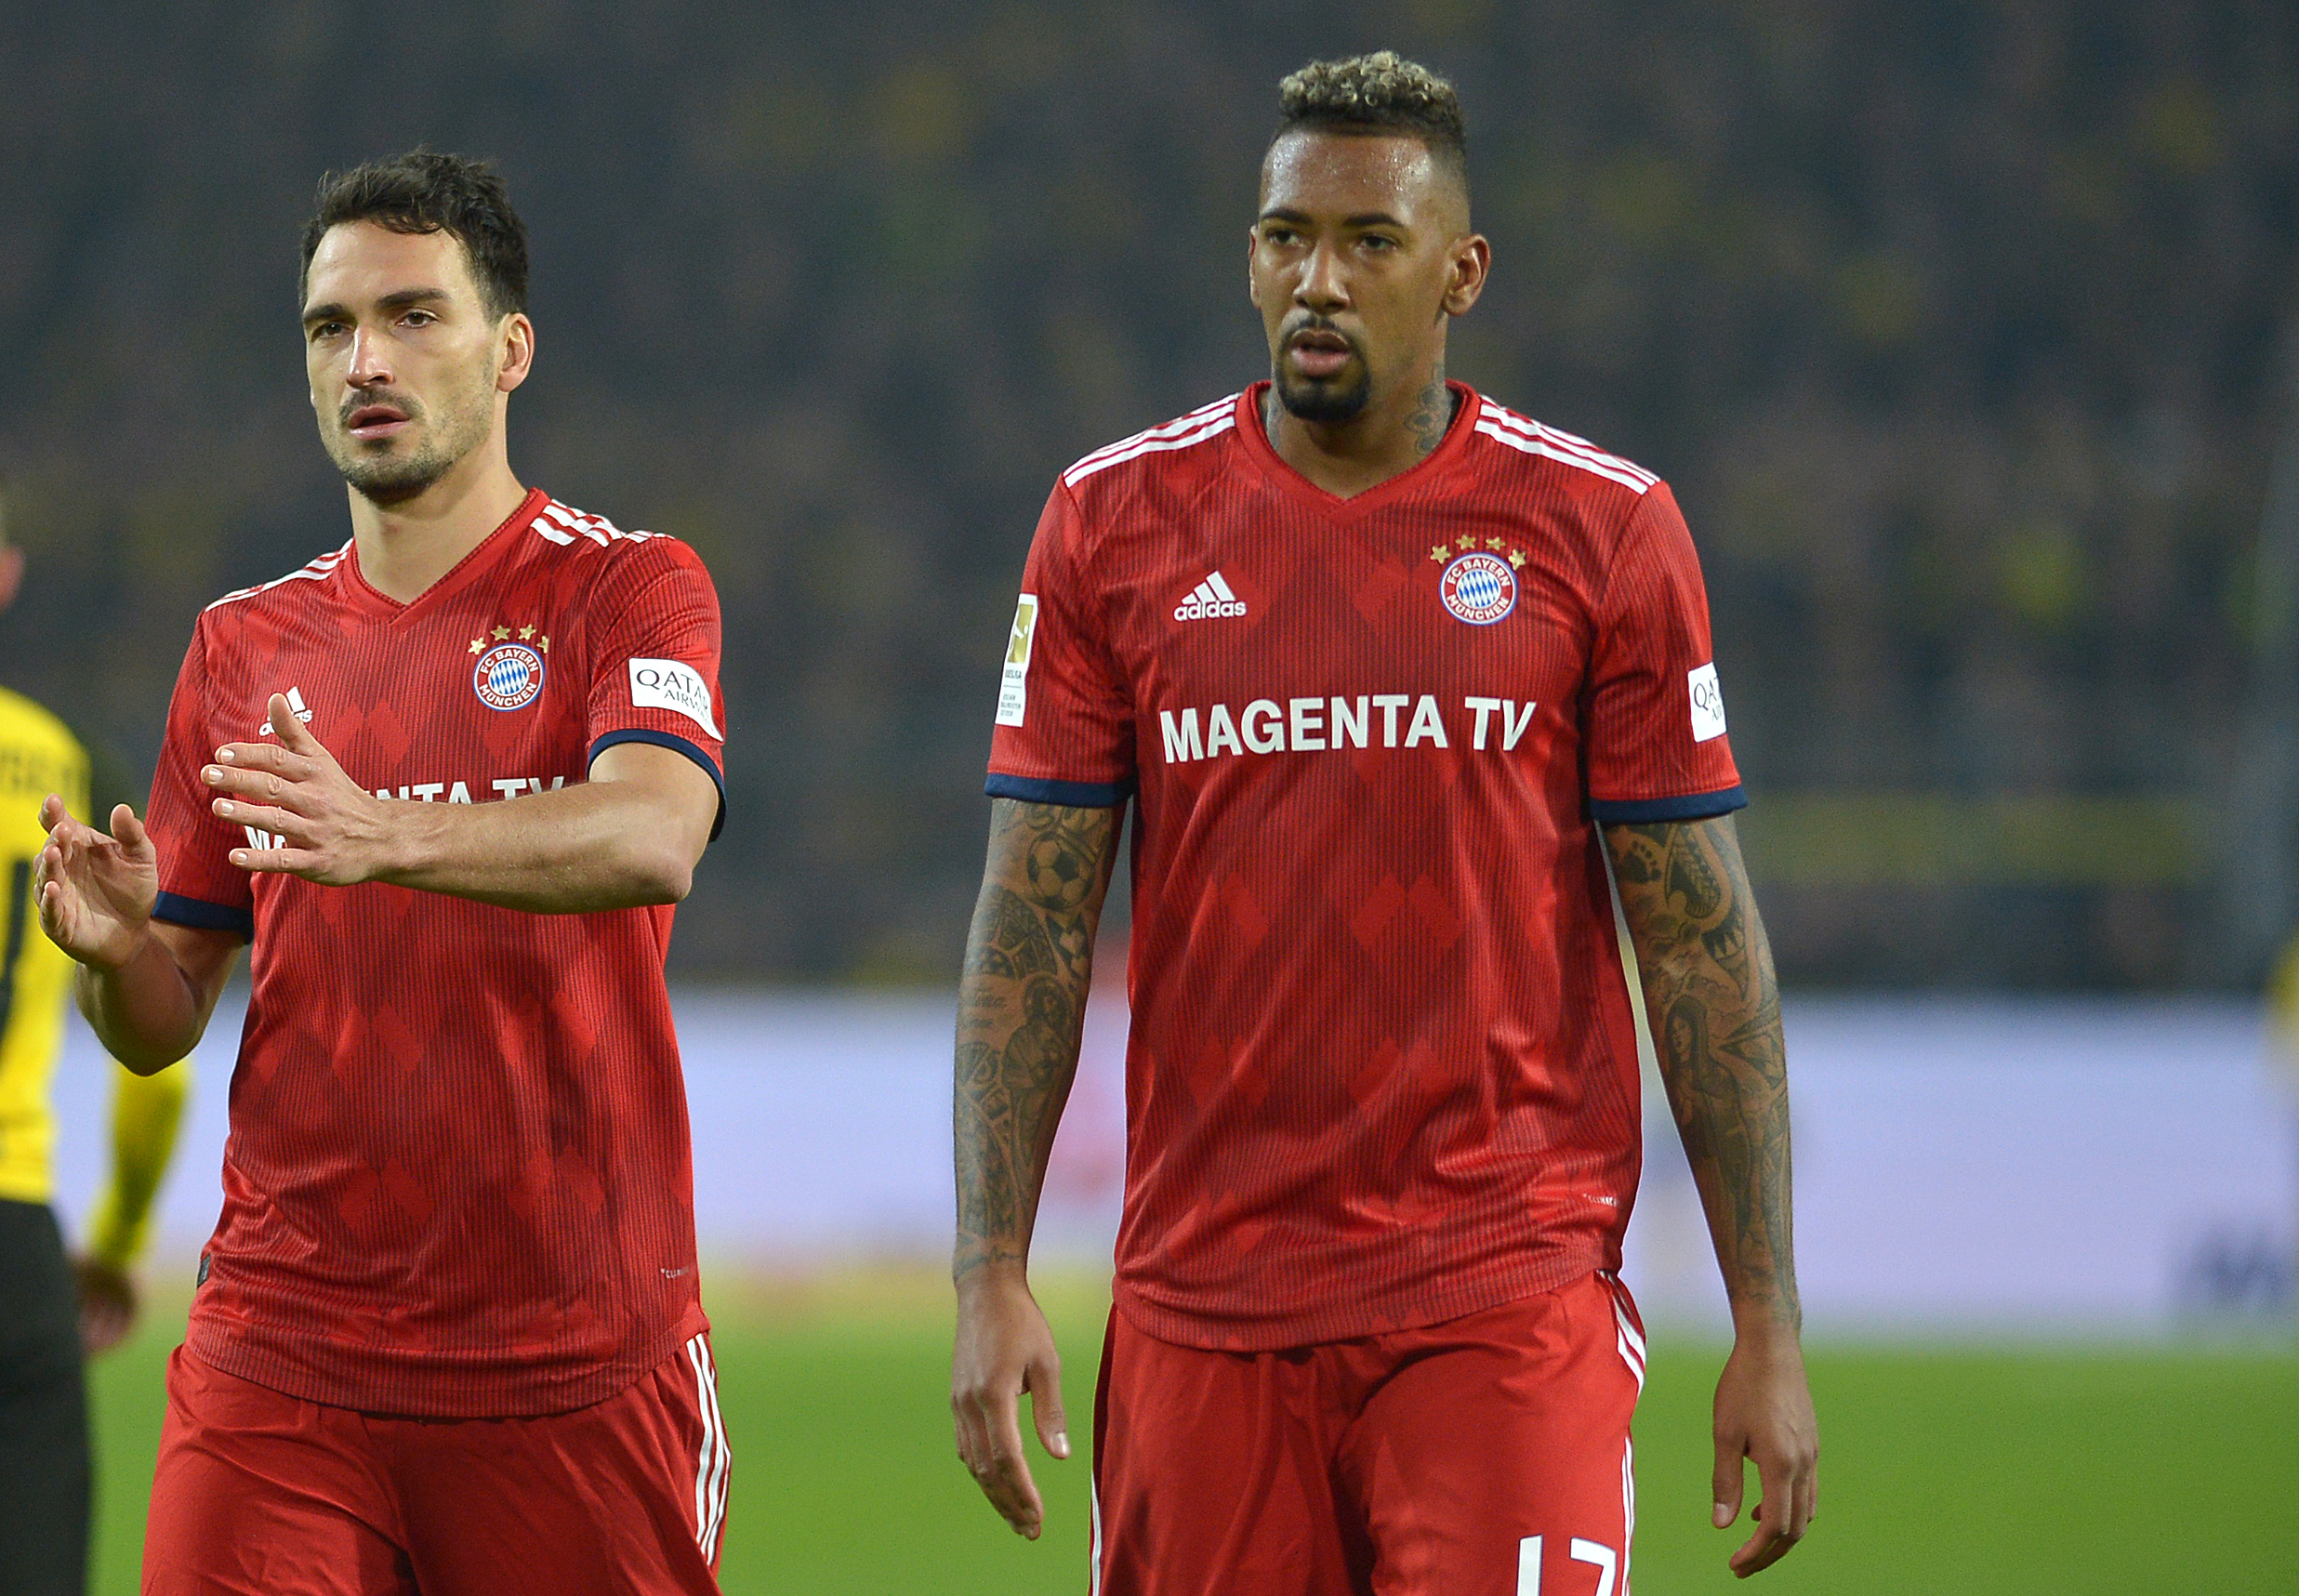 0bfec61c9 Pokal semifinal might be last match together for Mats Hummels and Jerome  Boateng